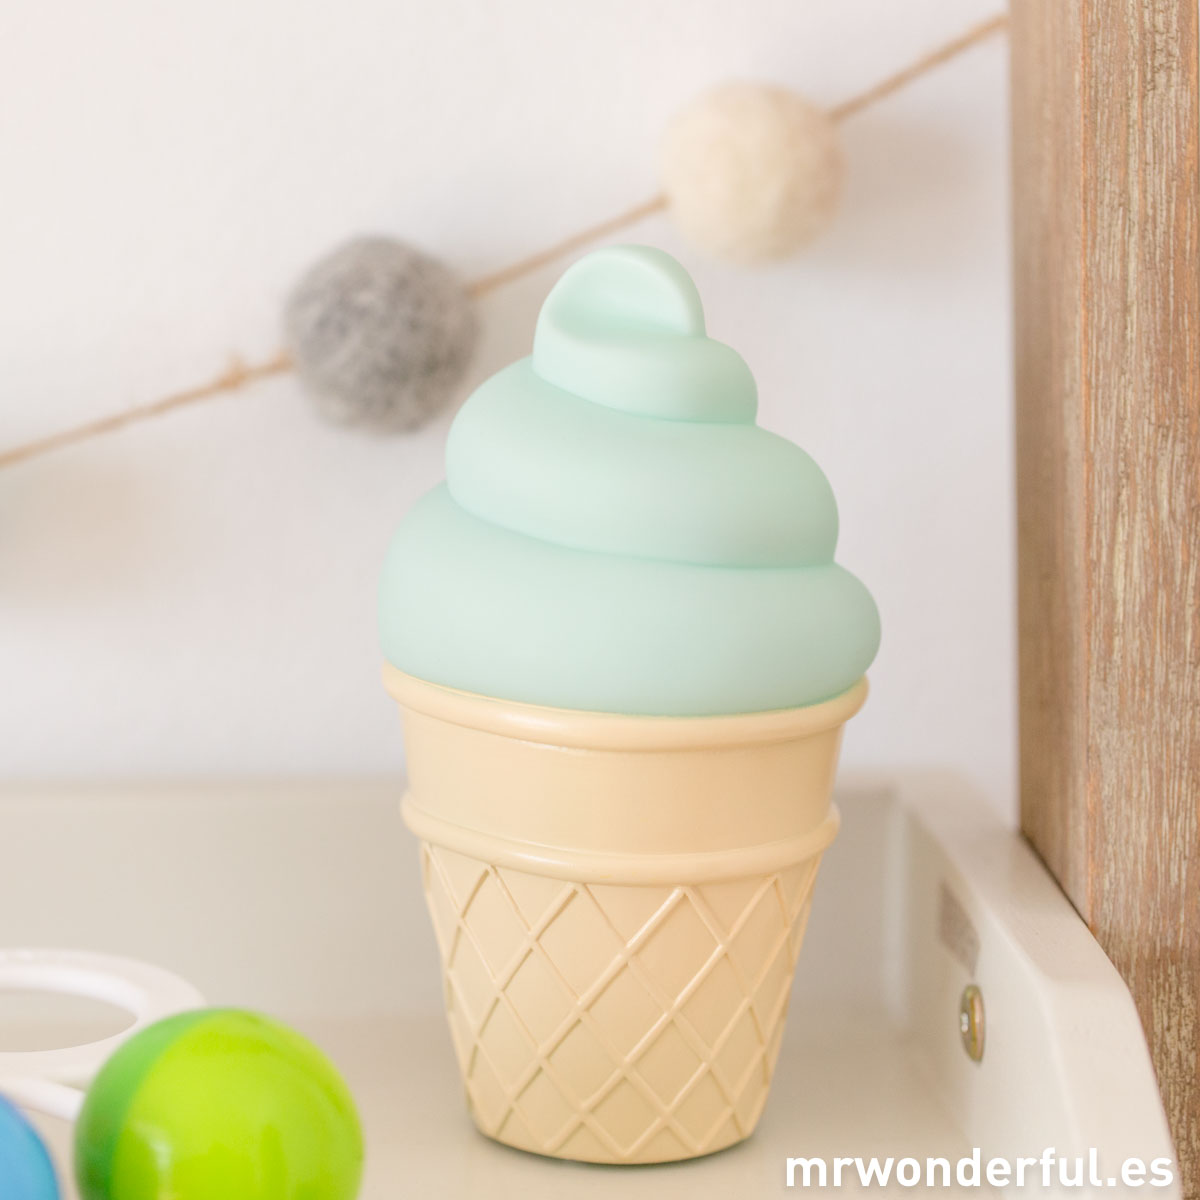 mrwonderful_PRA02818_Luz-nocturna-Icecream-color-mint-13